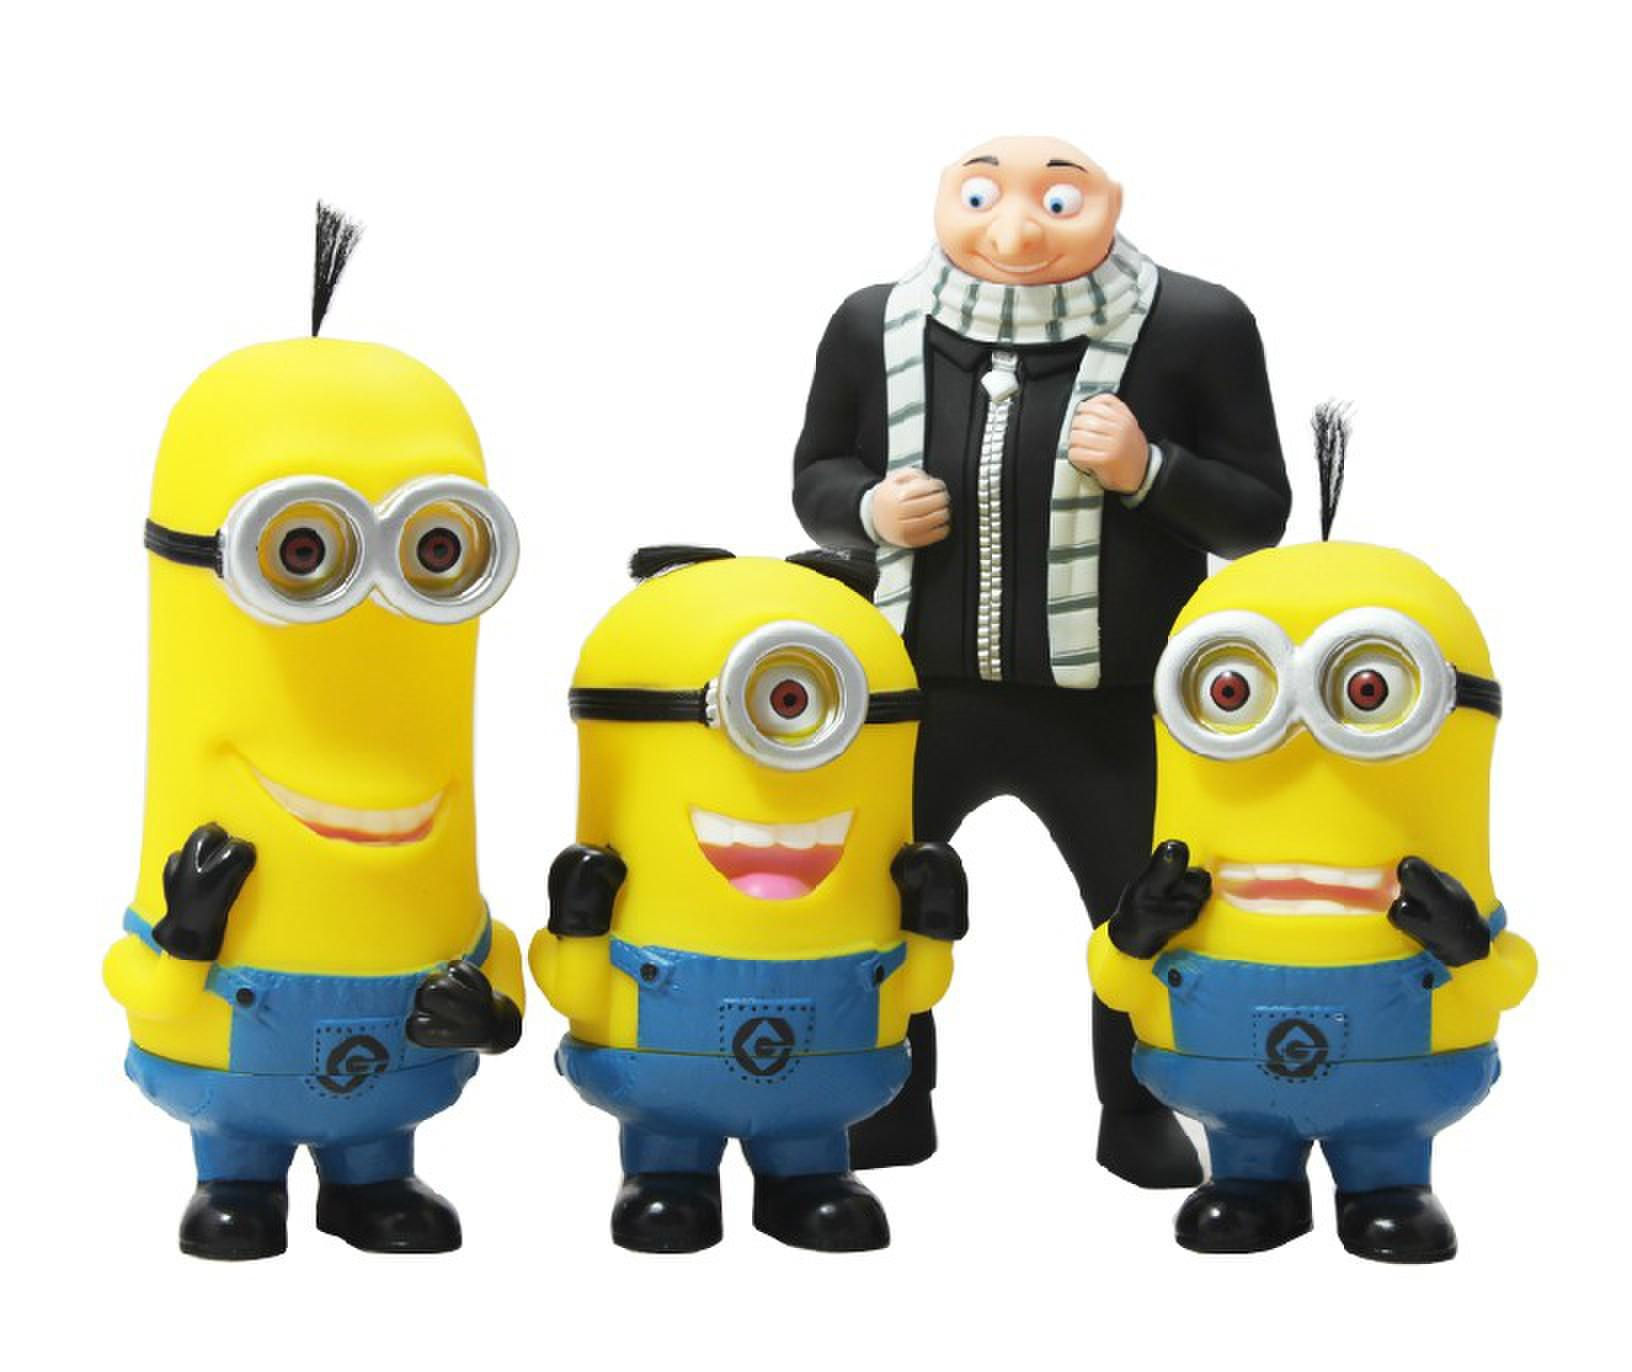 2018 Despicable Me 2 3d Eye Minions Gru Piggy Bank Money Bank Coin Bag  Retail Christmas Gift For Kids From Kate And Kevin, $14.88 | Dhgate.Com